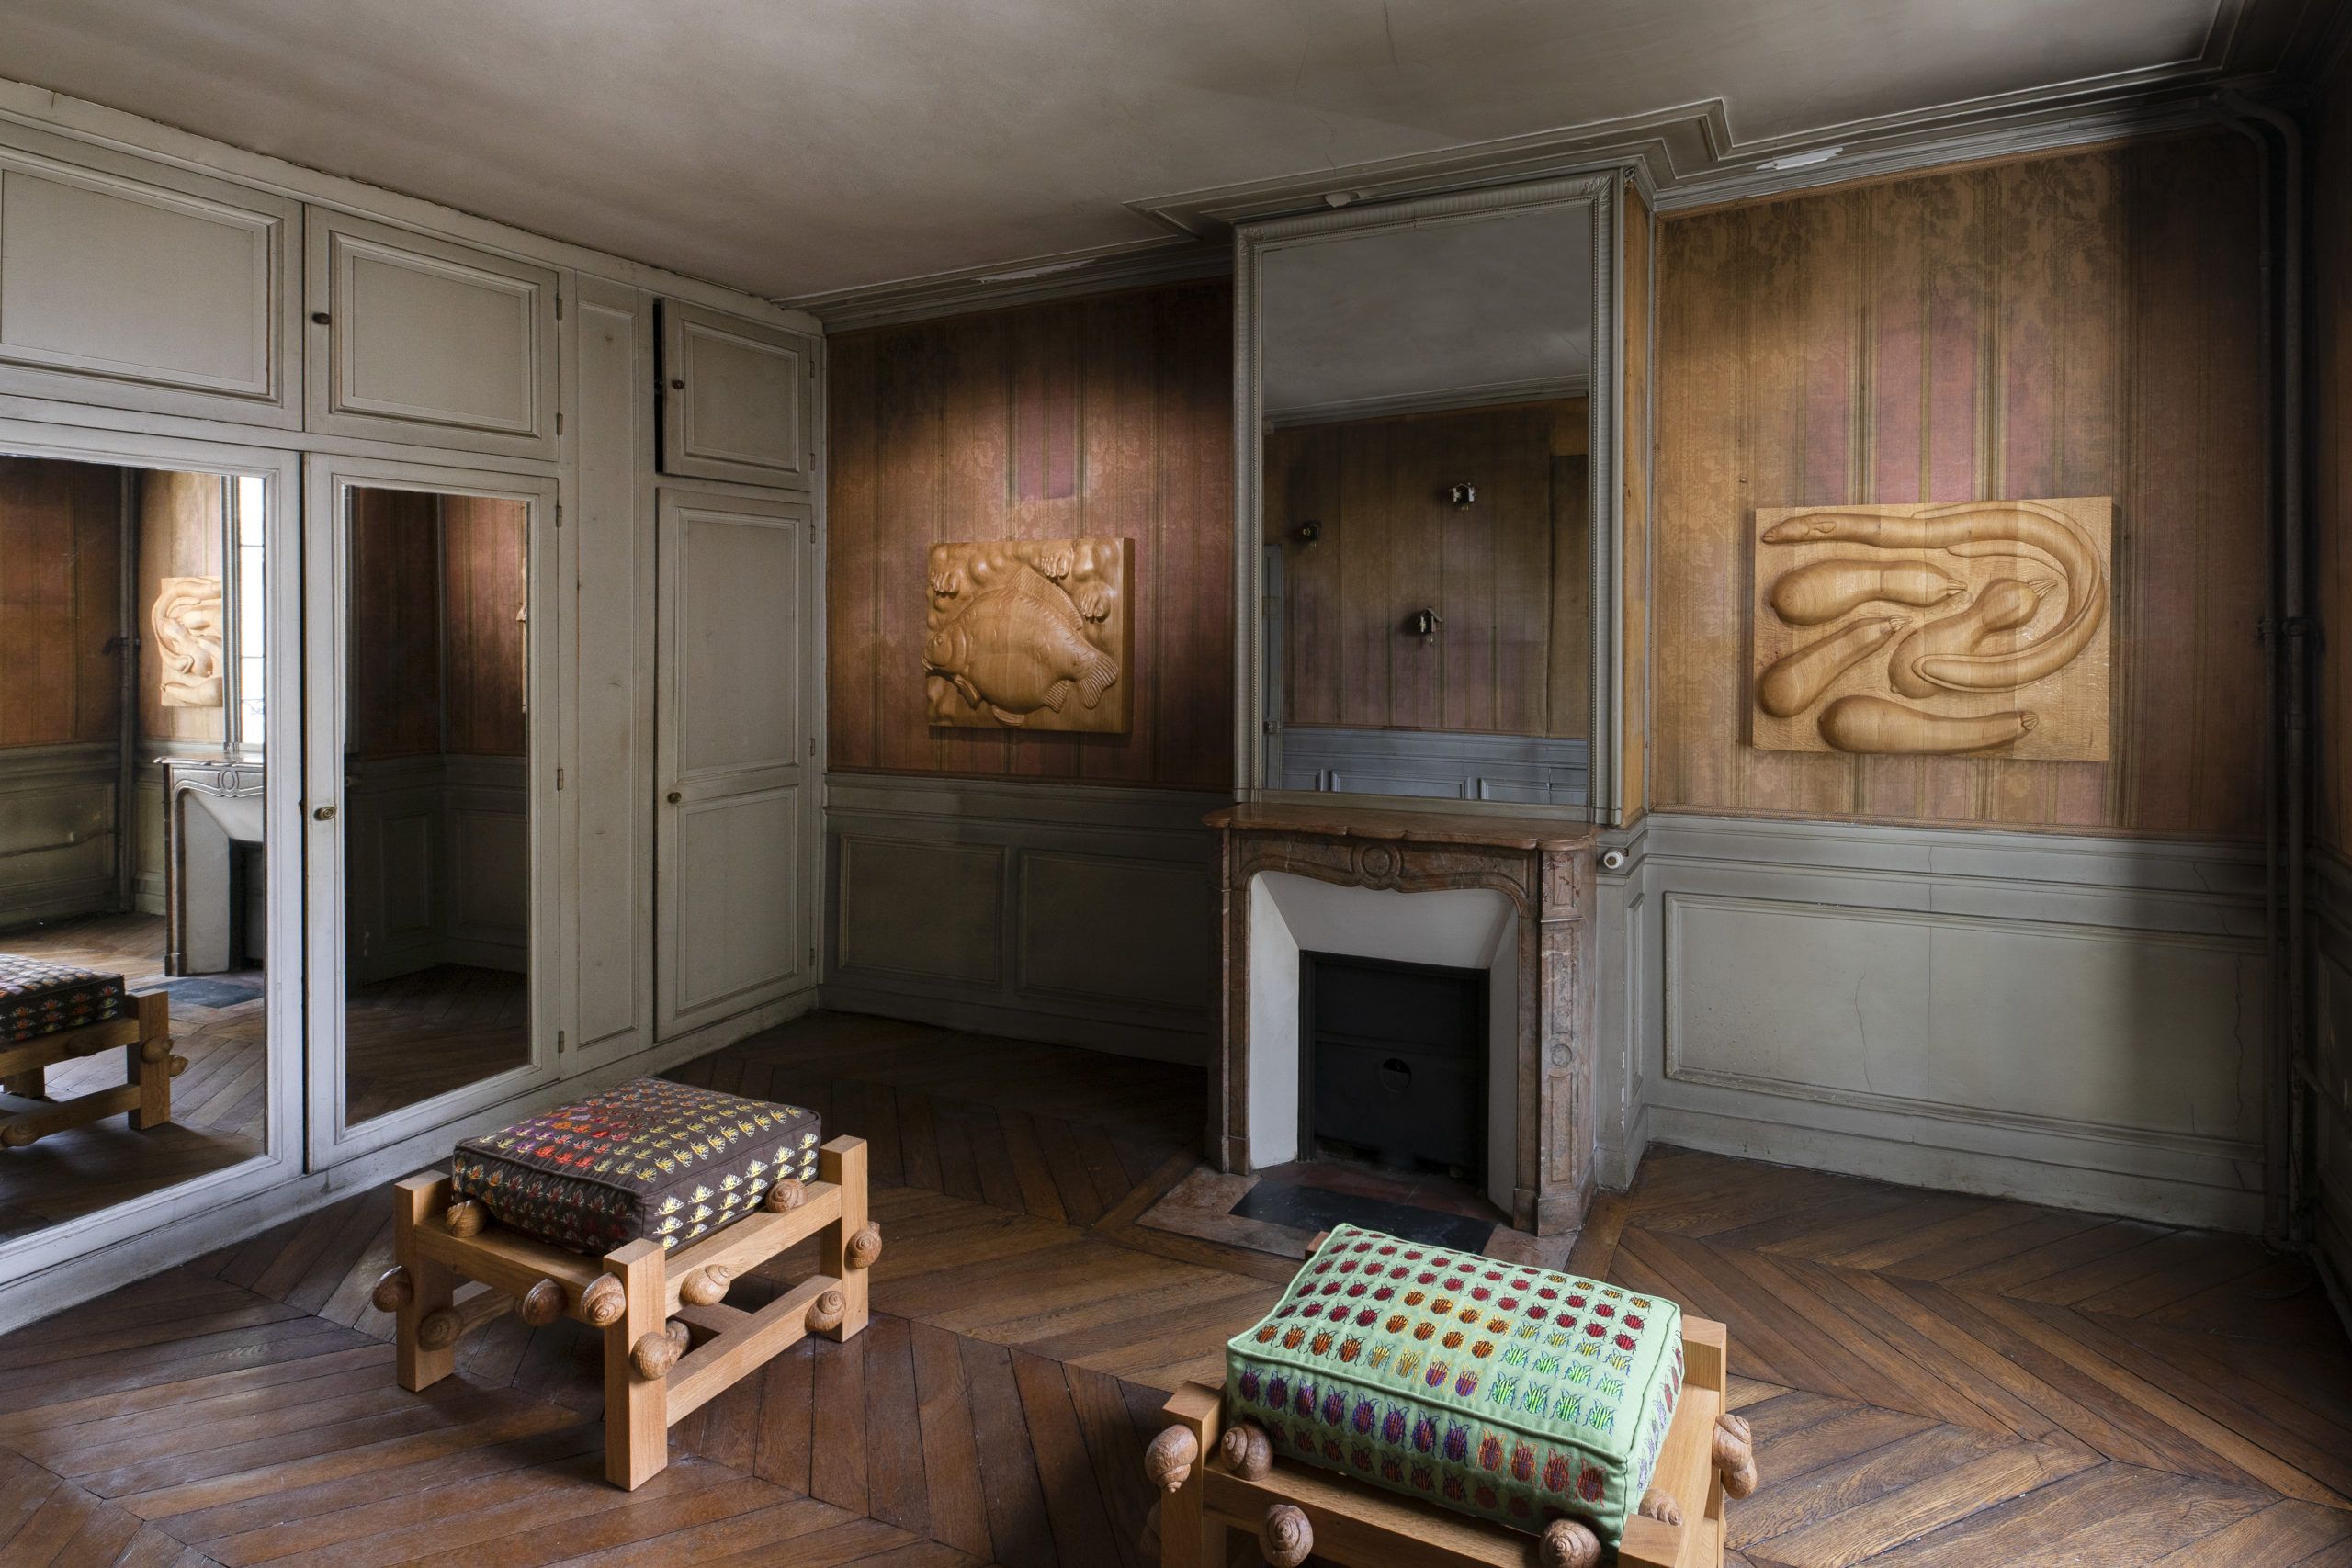 Vue d l'exposition, CLEARING_Grand Ménage_2021, courtesy galerie Clearing.